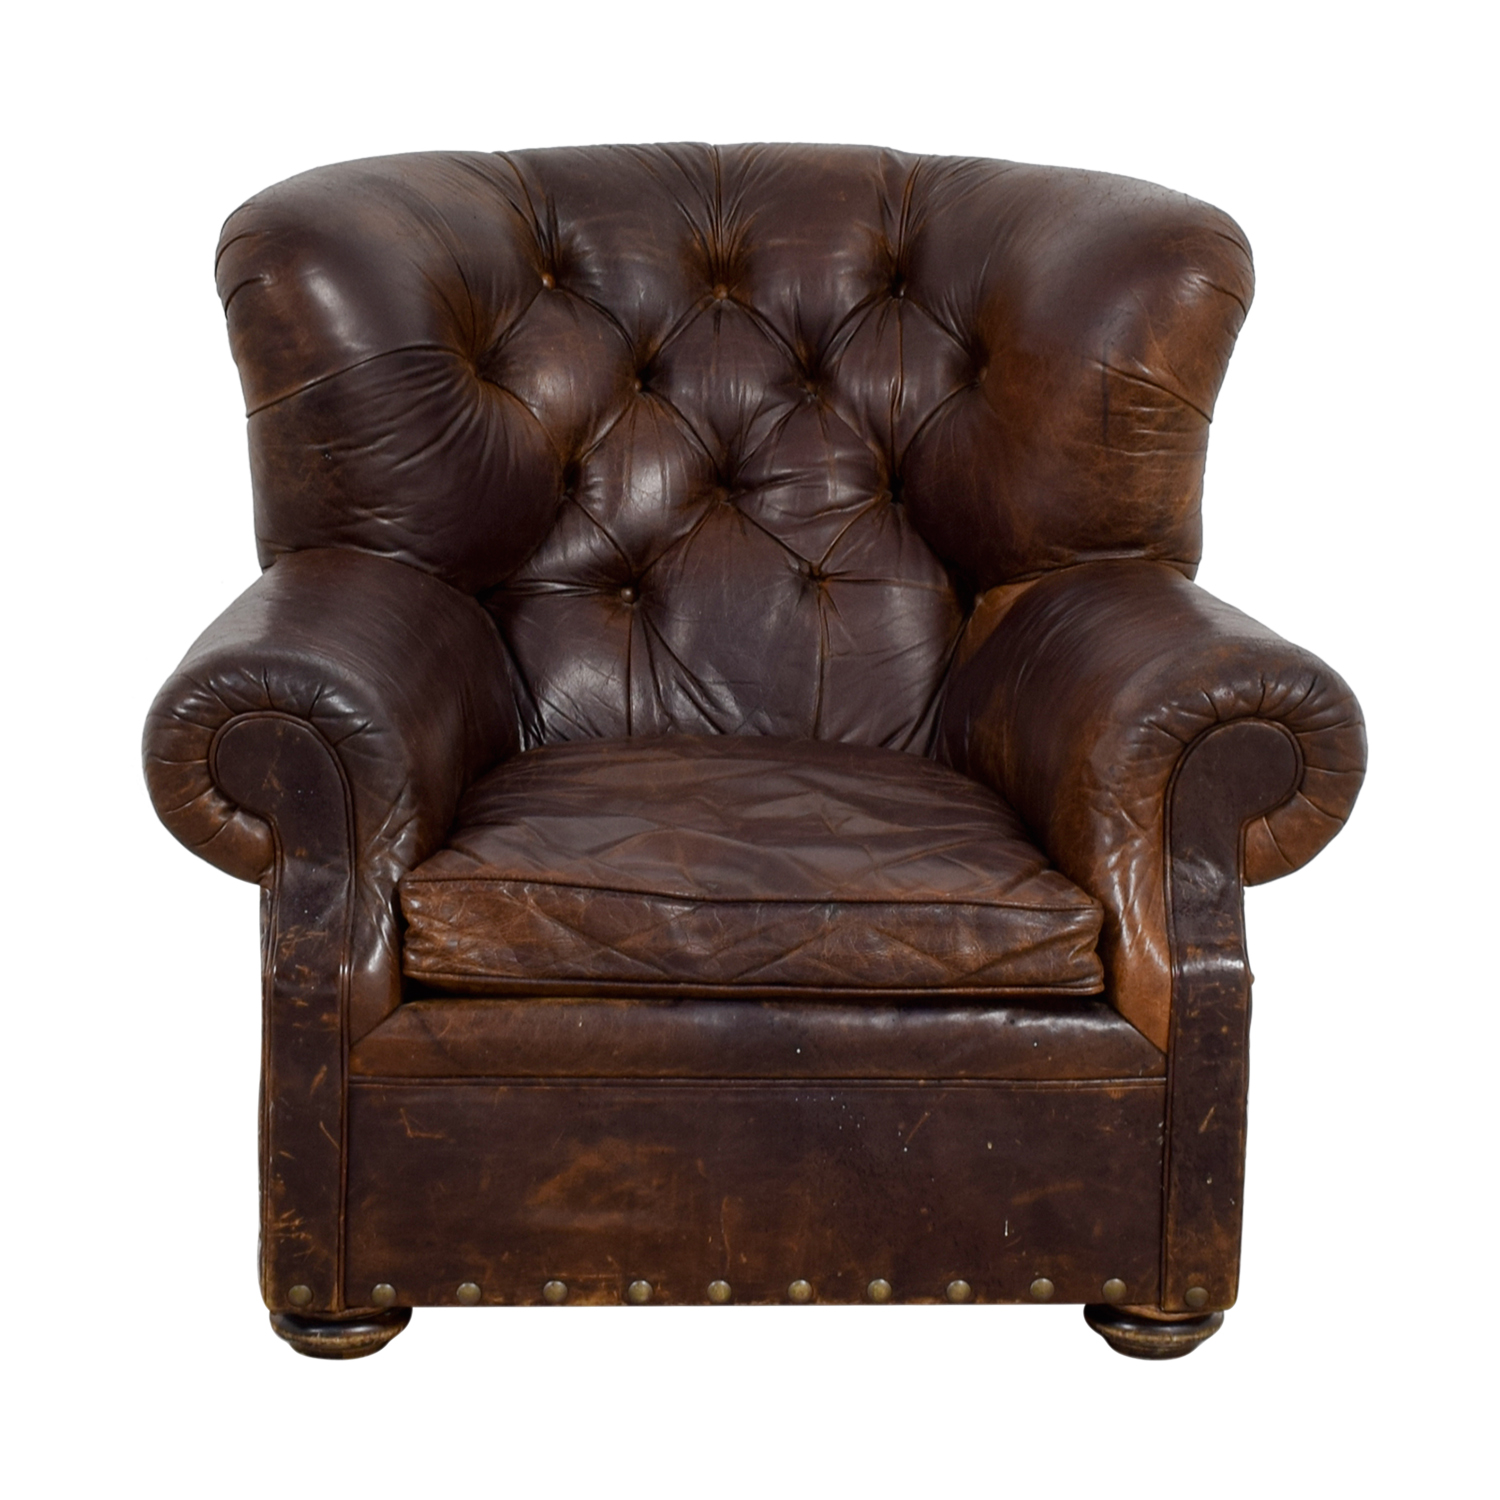 Restoration Hardware Restoration Hardware Brown Leather Accent Chair Second  Hand ...